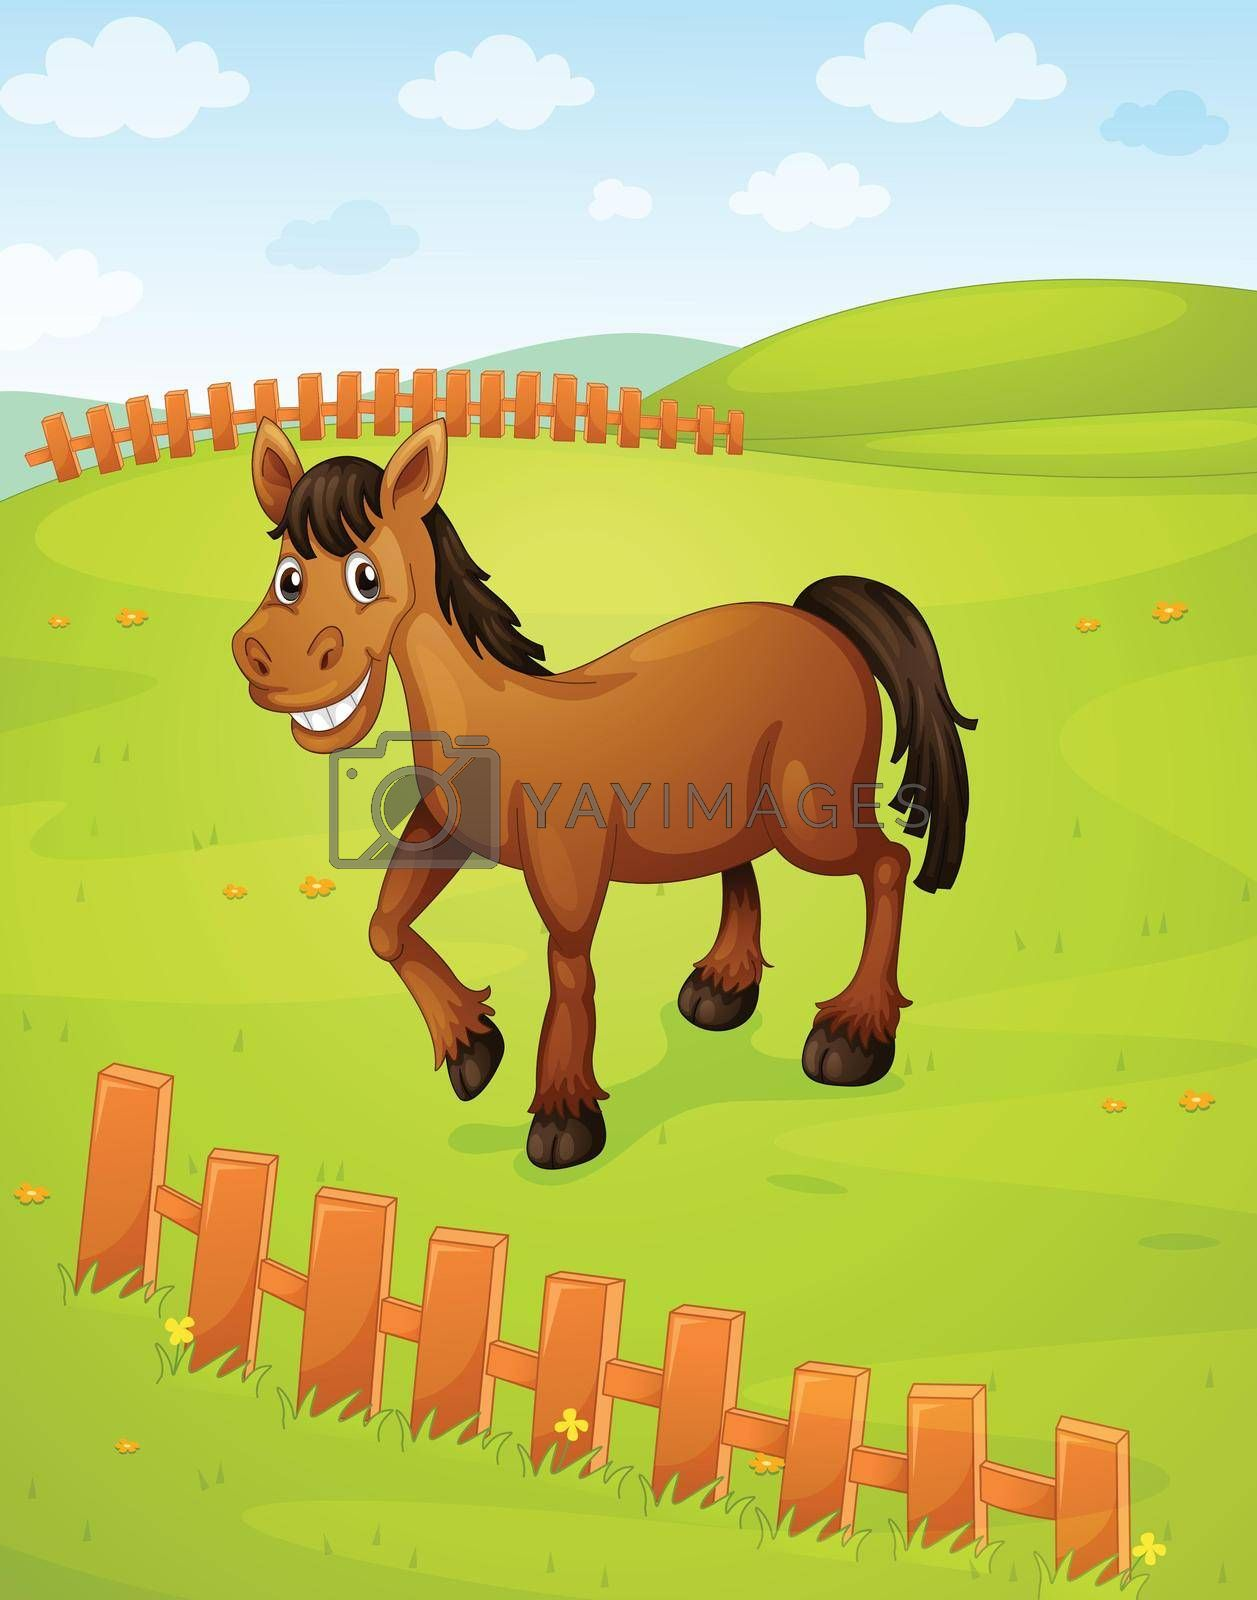 illustration of a horse in a beautiful nature